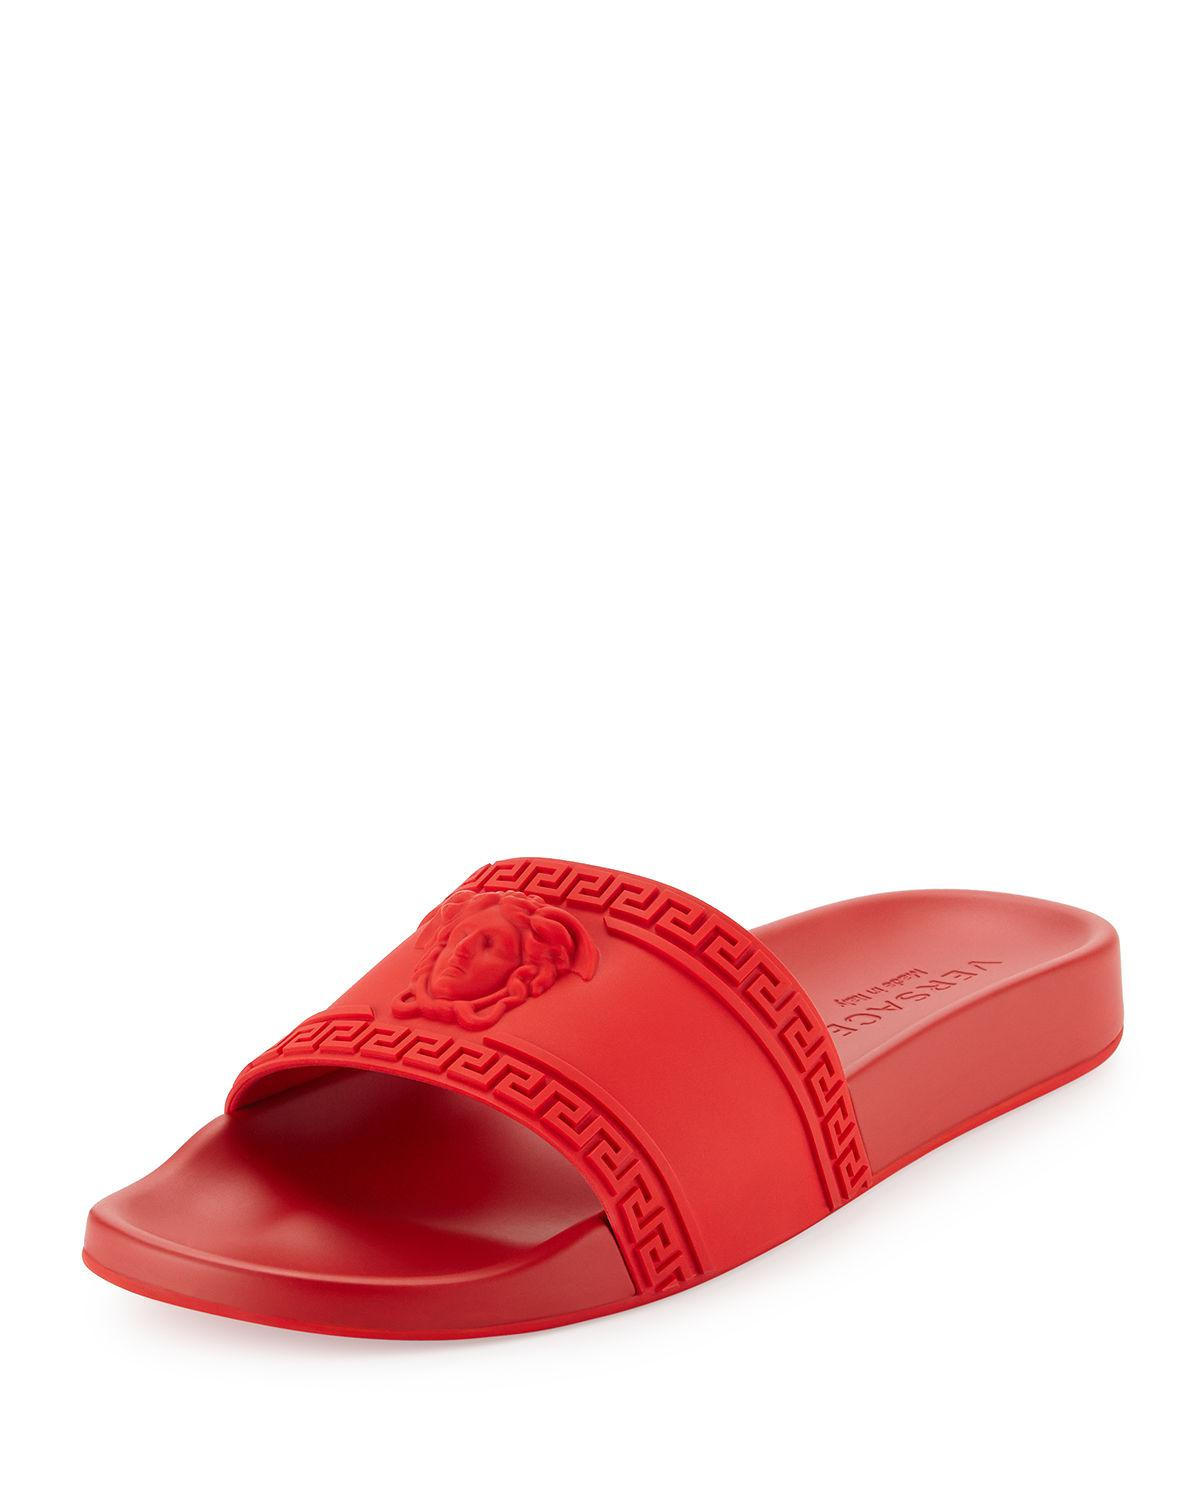 7556505226262 Lyst - Versace Medusa-Head PVC Slides in Red for Men - Save 65%